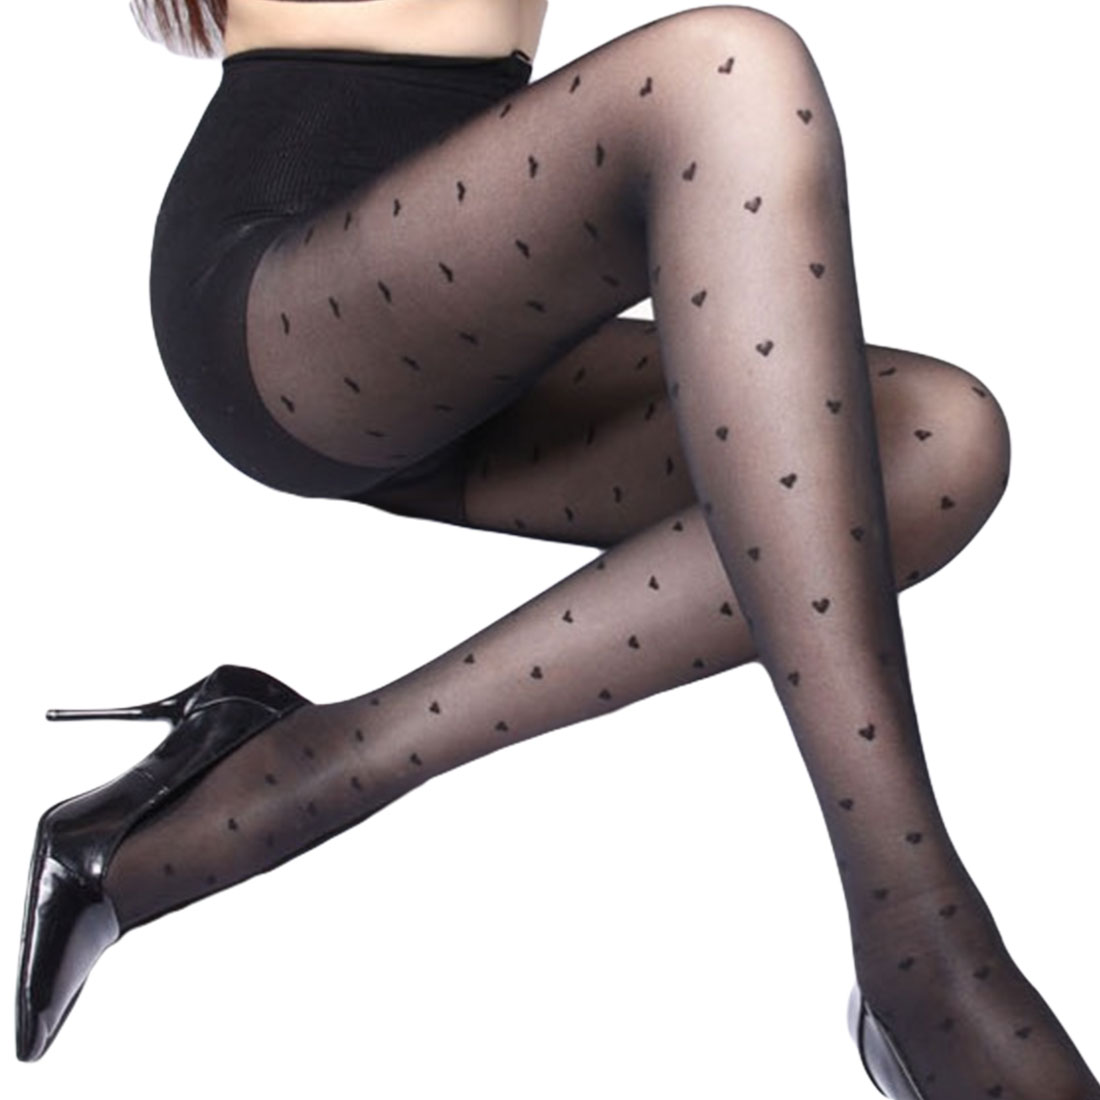 2019 Women Sexy Tights Stockings Female Love Heart Transparent Pantyhose Black Stocking Microfiber Acrylic Hot Sale Dropship